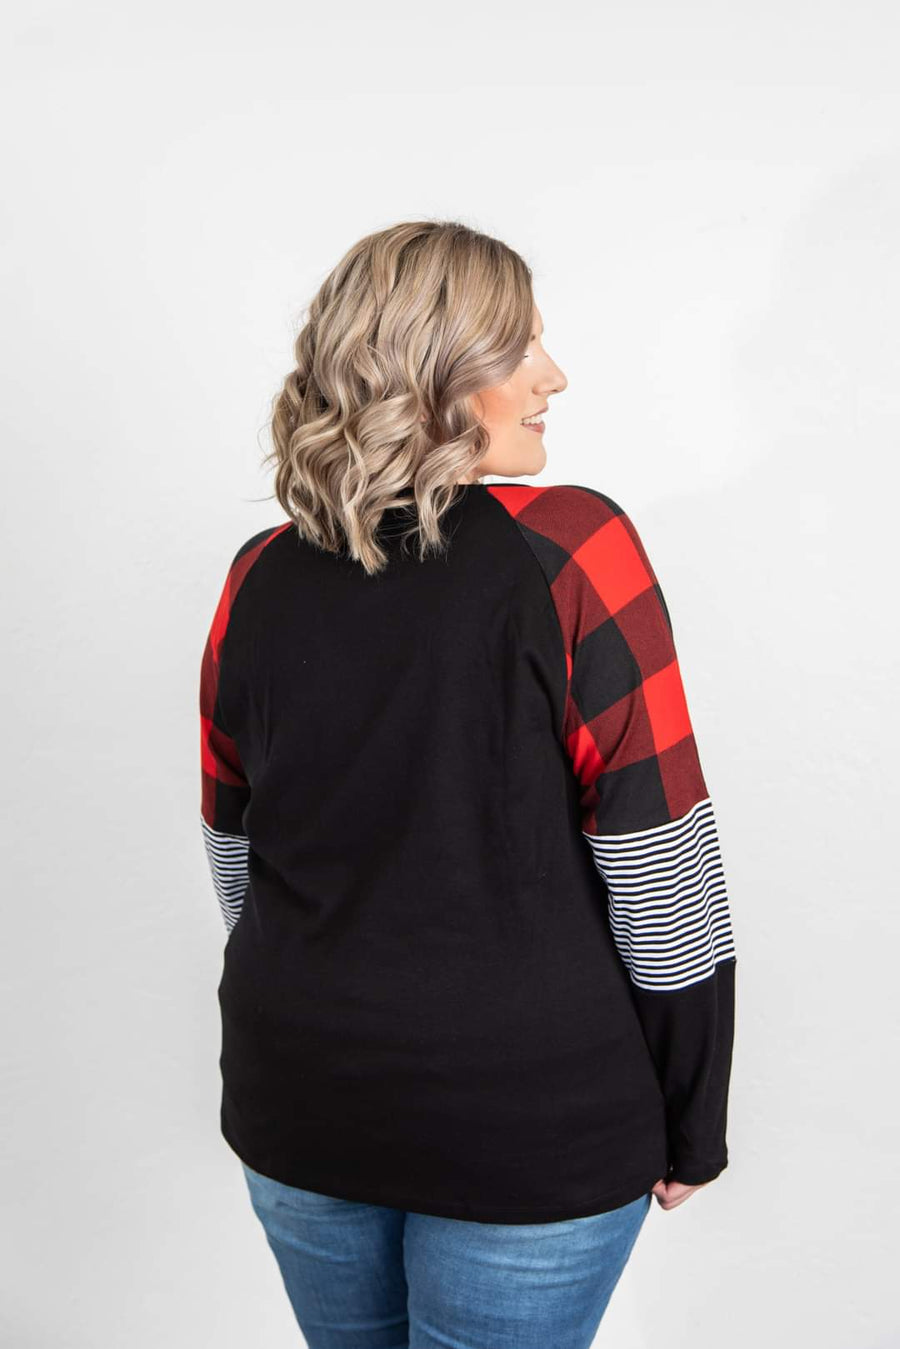 Buffalo Plaid + Stripe Sleeve Black Raglan Tops Michelle Mae